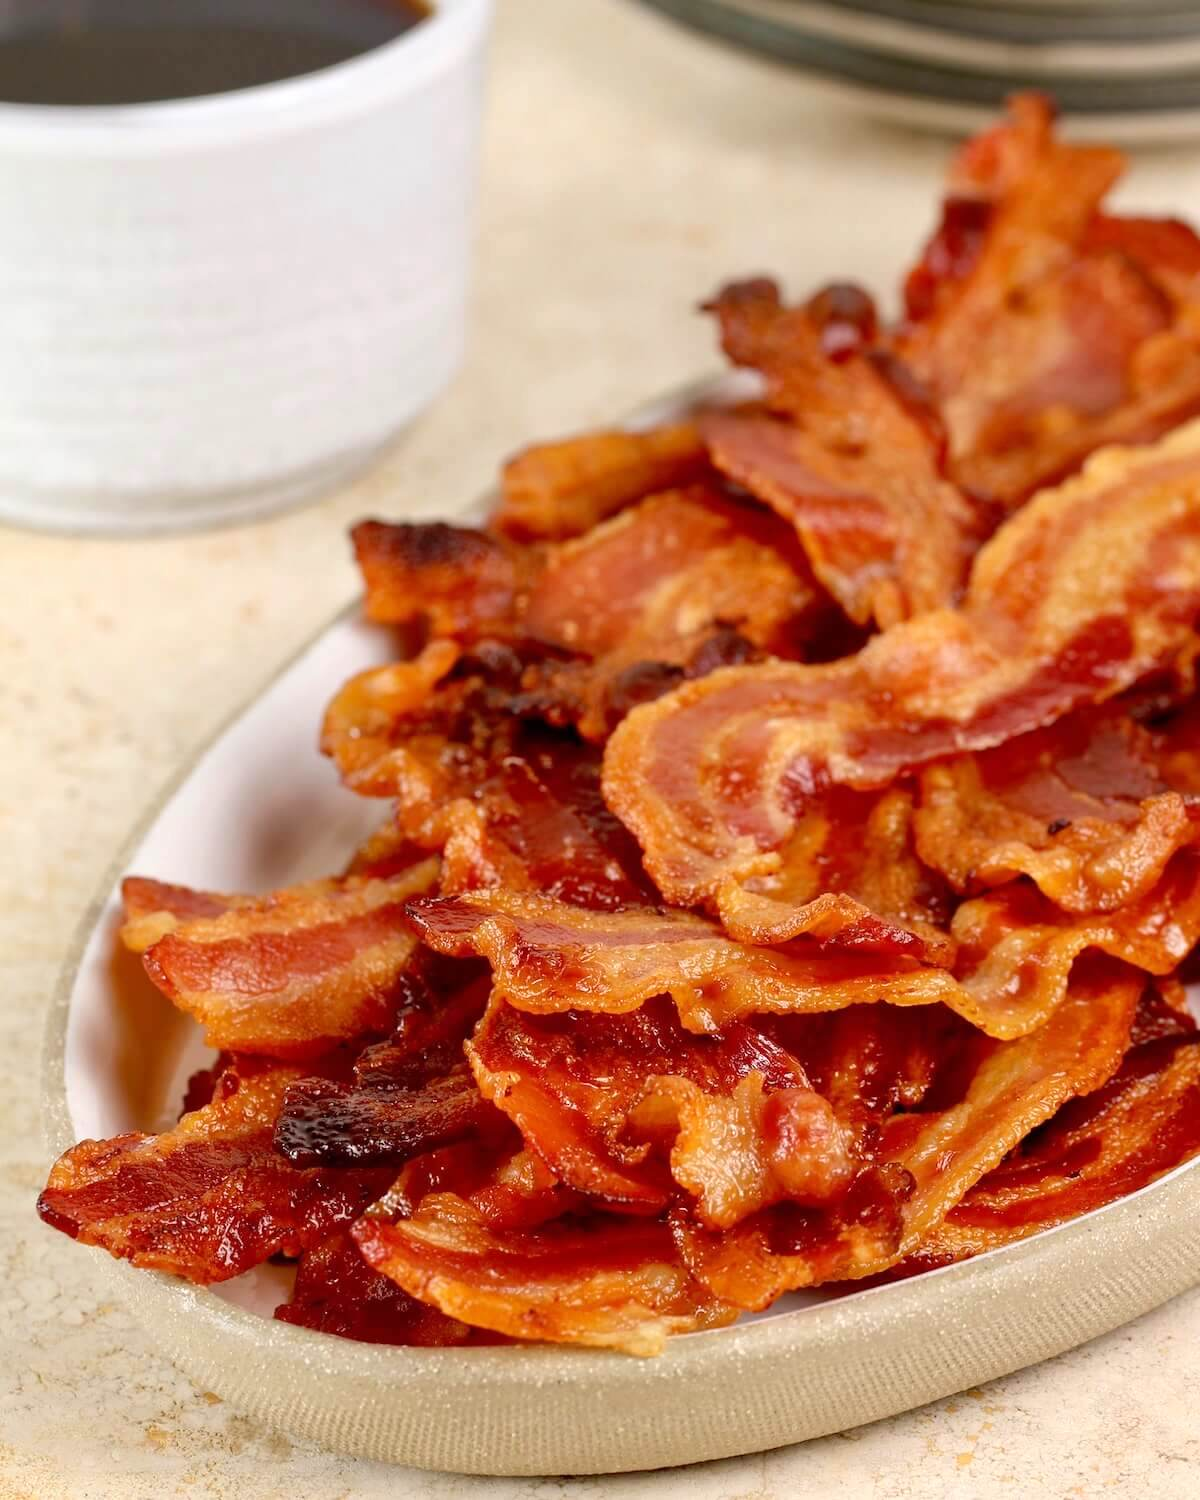 vertical image of bacon with coffee